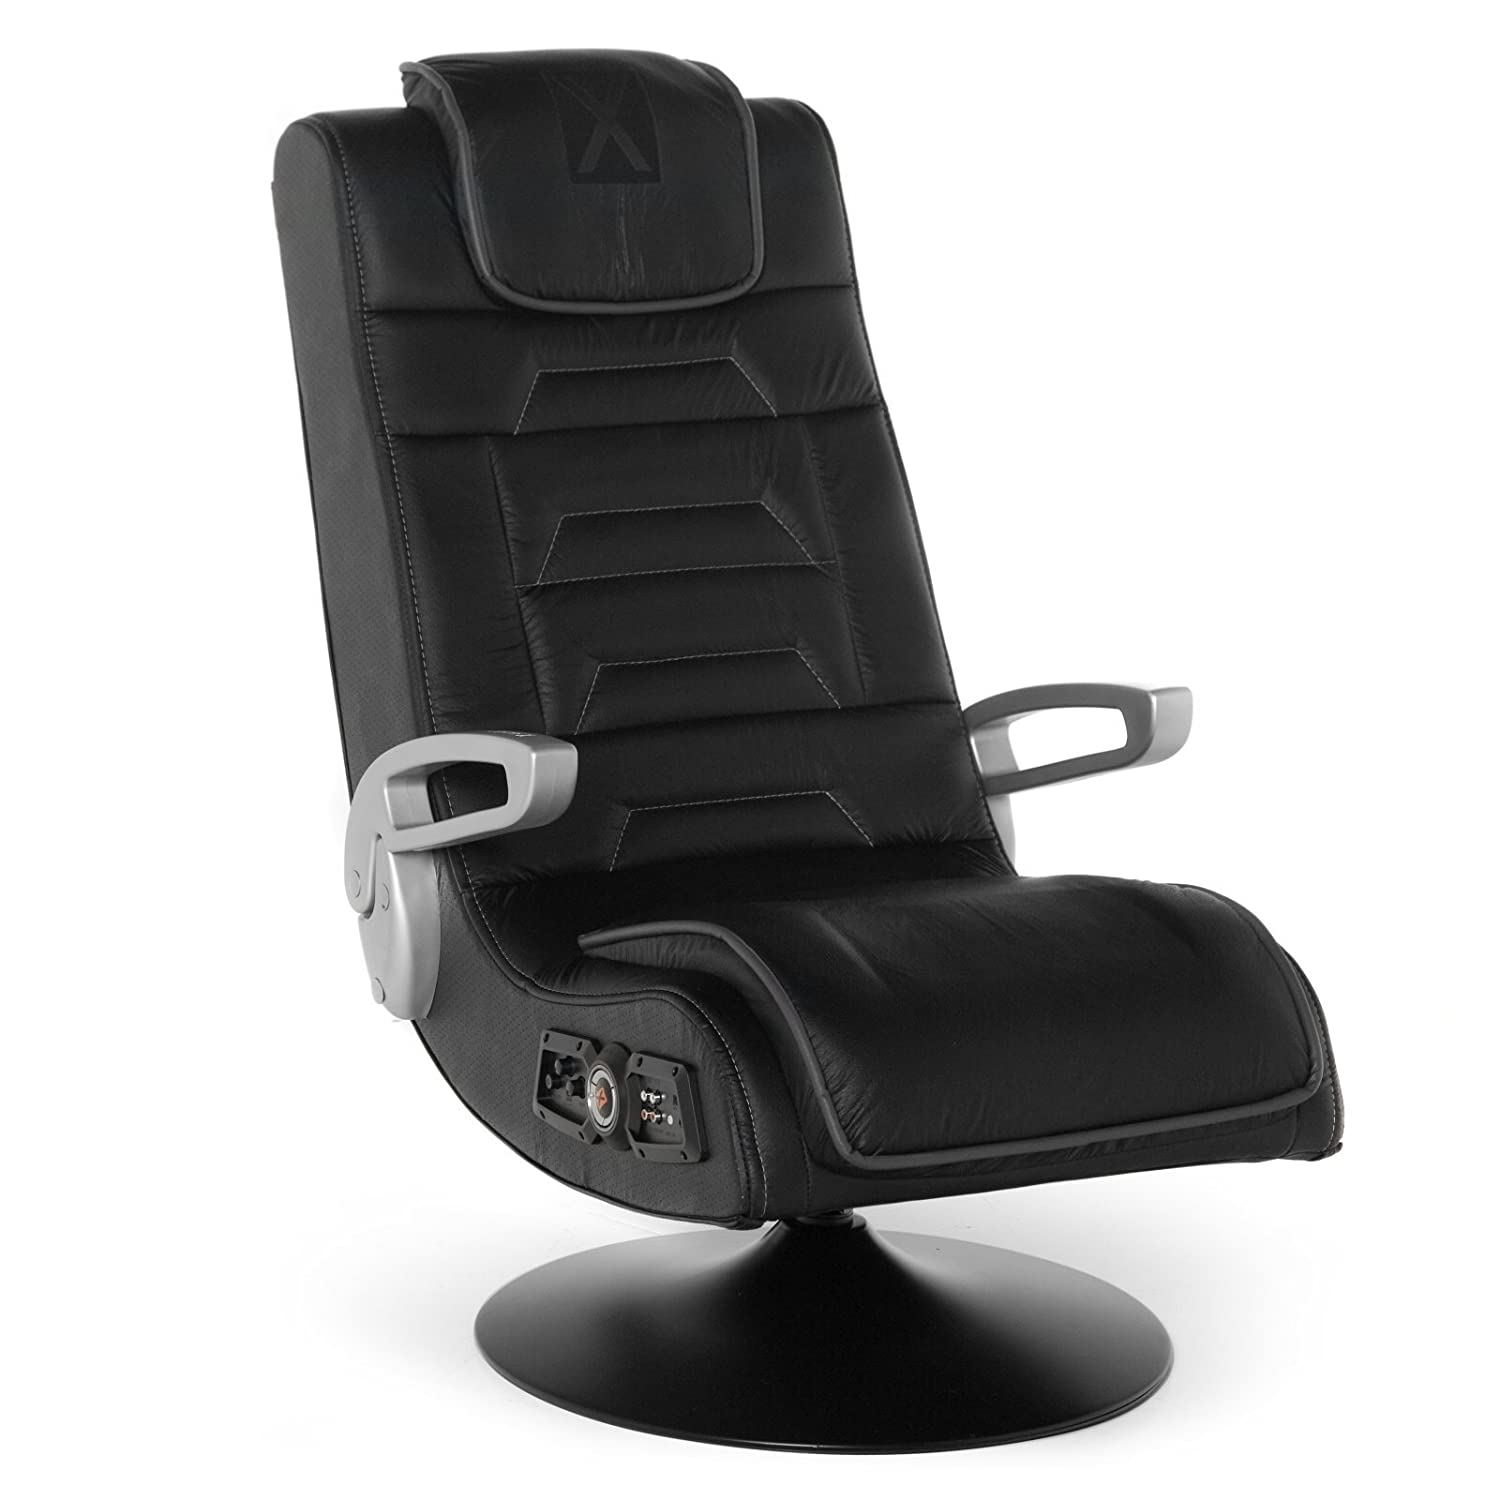 X Rocker Pro Review Are Gaming Chairs Still a Thing